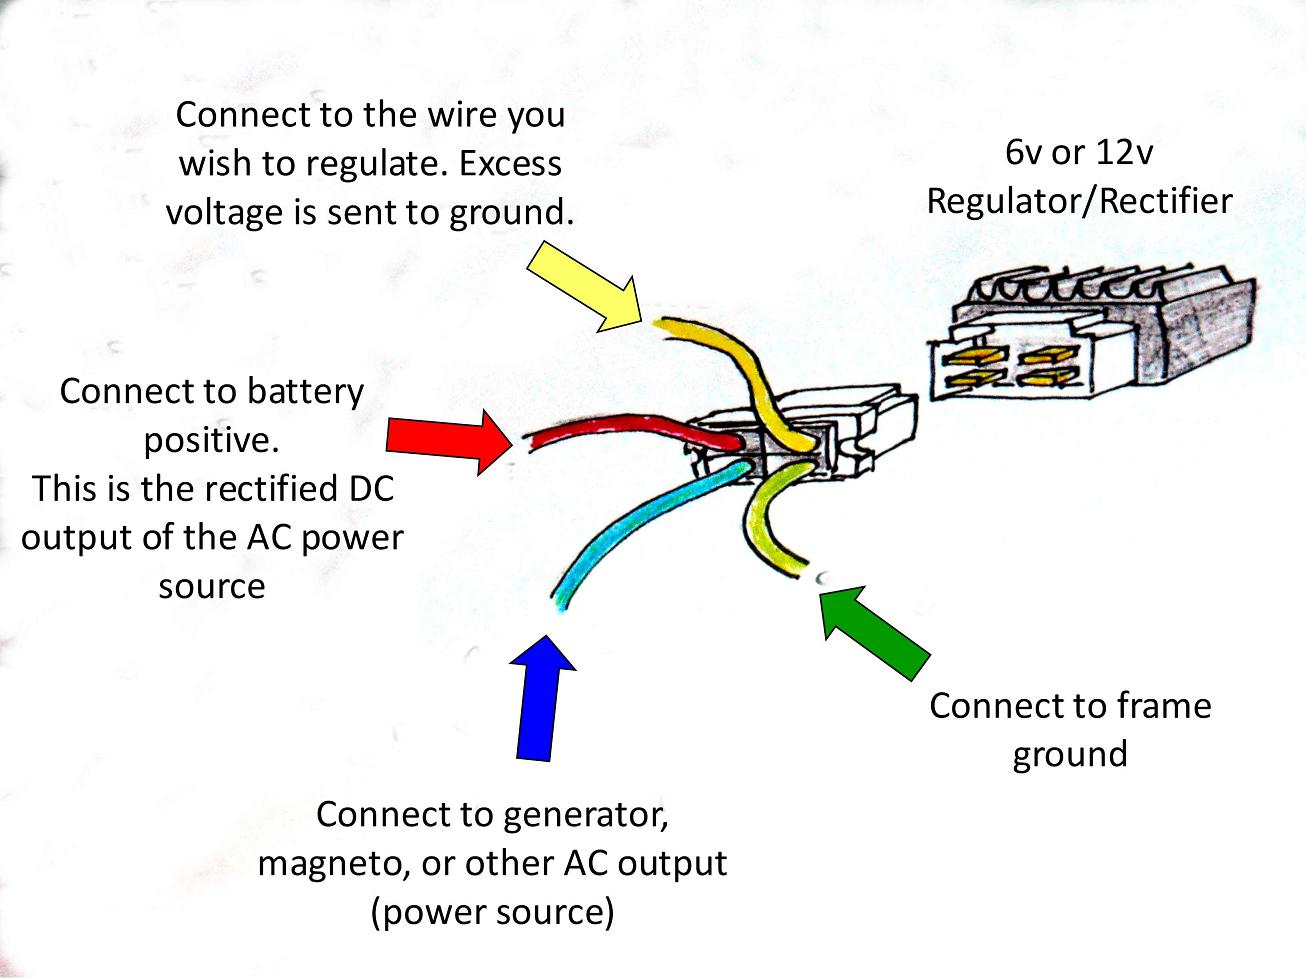 dratv_2267_13269058 4 wire regulator rectifier wiring diagram efcaviation com  at bayanpartner.co